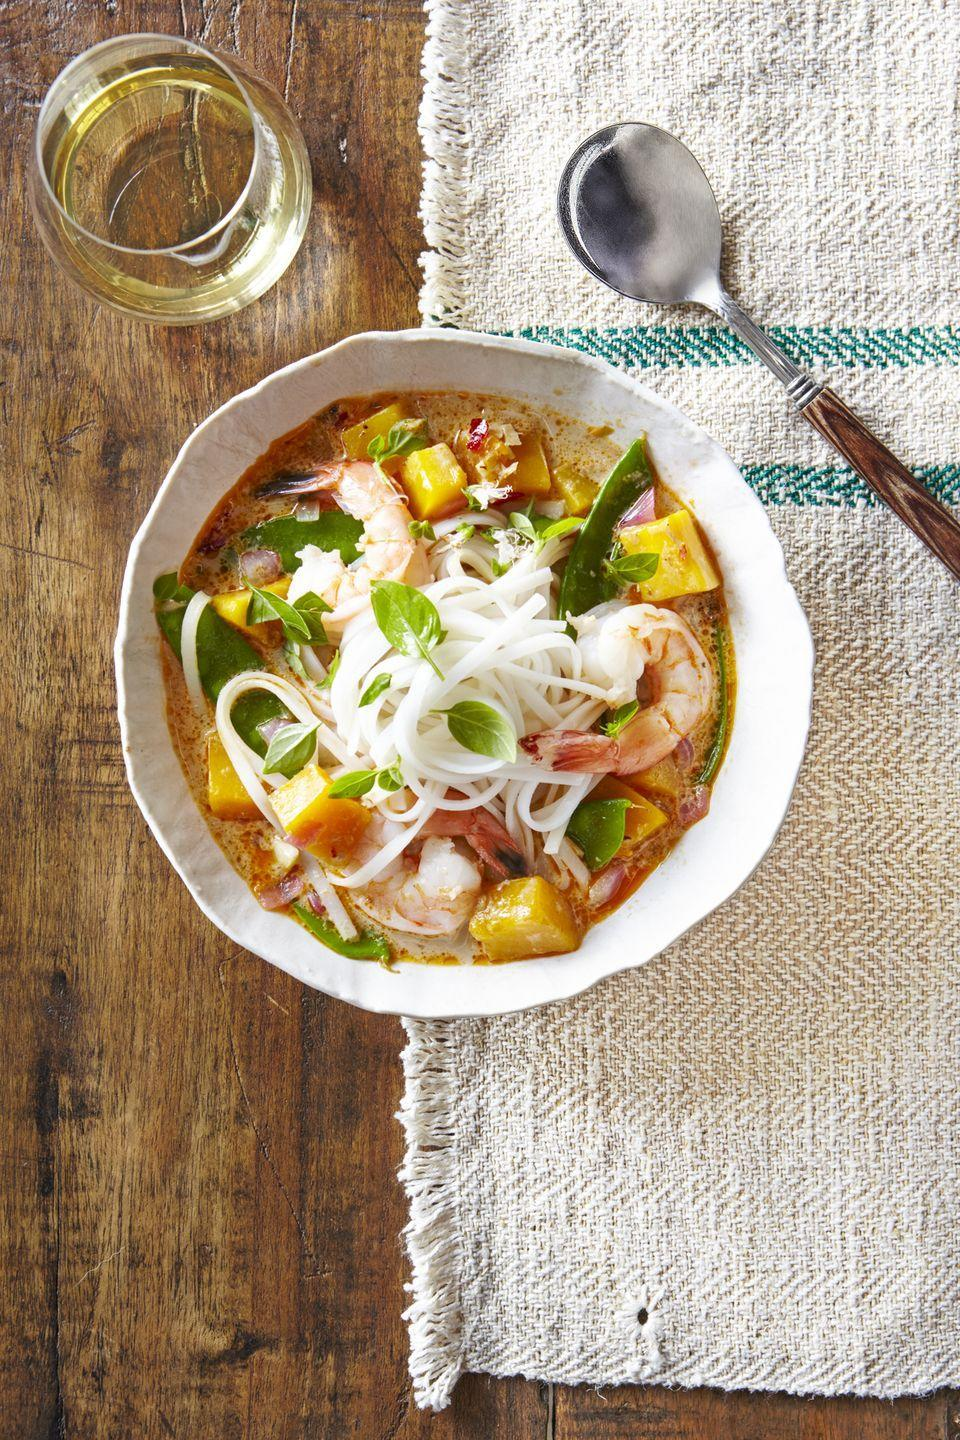 """<p>This tasty <a href=""""https://www.countryliving.com/food-drinks/g3569/fall-soups/"""" rel=""""nofollow noopener"""" target=""""_blank"""" data-ylk=""""slk:fall soup"""" class=""""link rapid-noclick-resp"""">fall soup</a> can be made in under 25 minutes.</p><p><strong><a href=""""https://www.countryliving.com/food-drinks/recipes/a39827/thai-noodle-soup-with-shrimp-pumpkin-recipe/"""" rel=""""nofollow noopener"""" target=""""_blank"""" data-ylk=""""slk:Get the recipe"""" class=""""link rapid-noclick-resp"""">Get the recipe</a>.</strong></p>"""